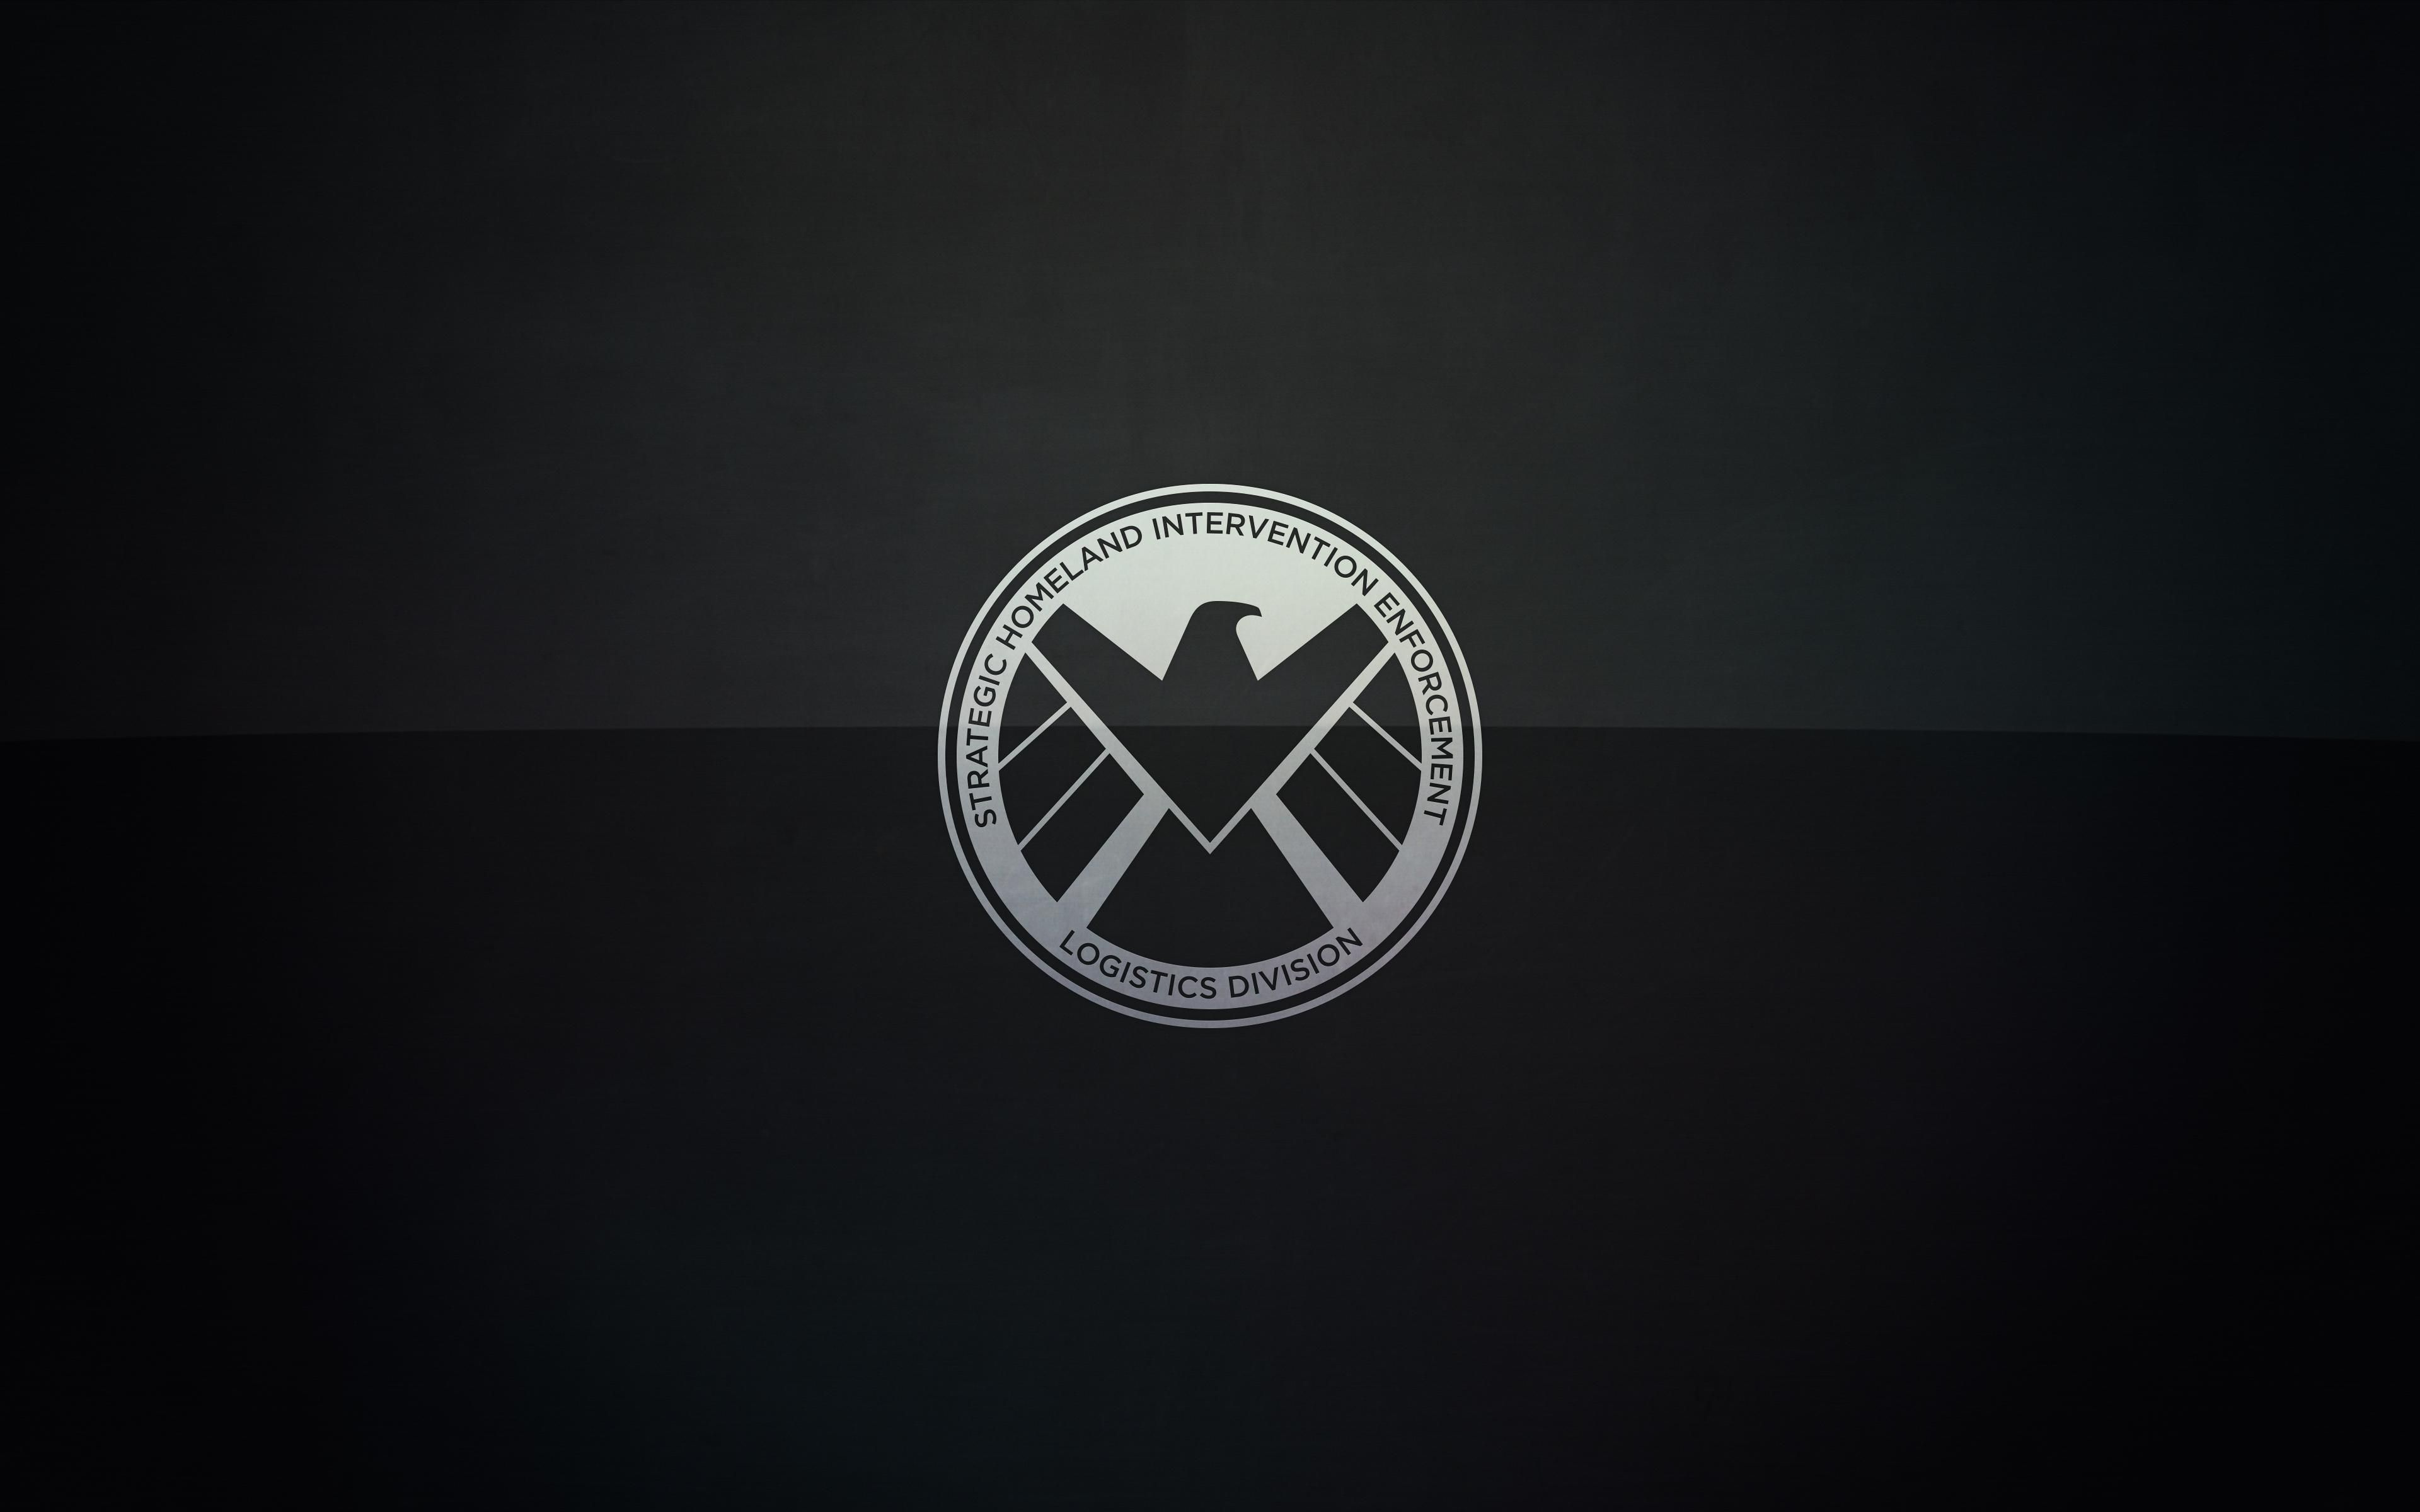 Marvel's Agents of S.H.I.E.L.D. Logo Wallpaper Wide or HD ...